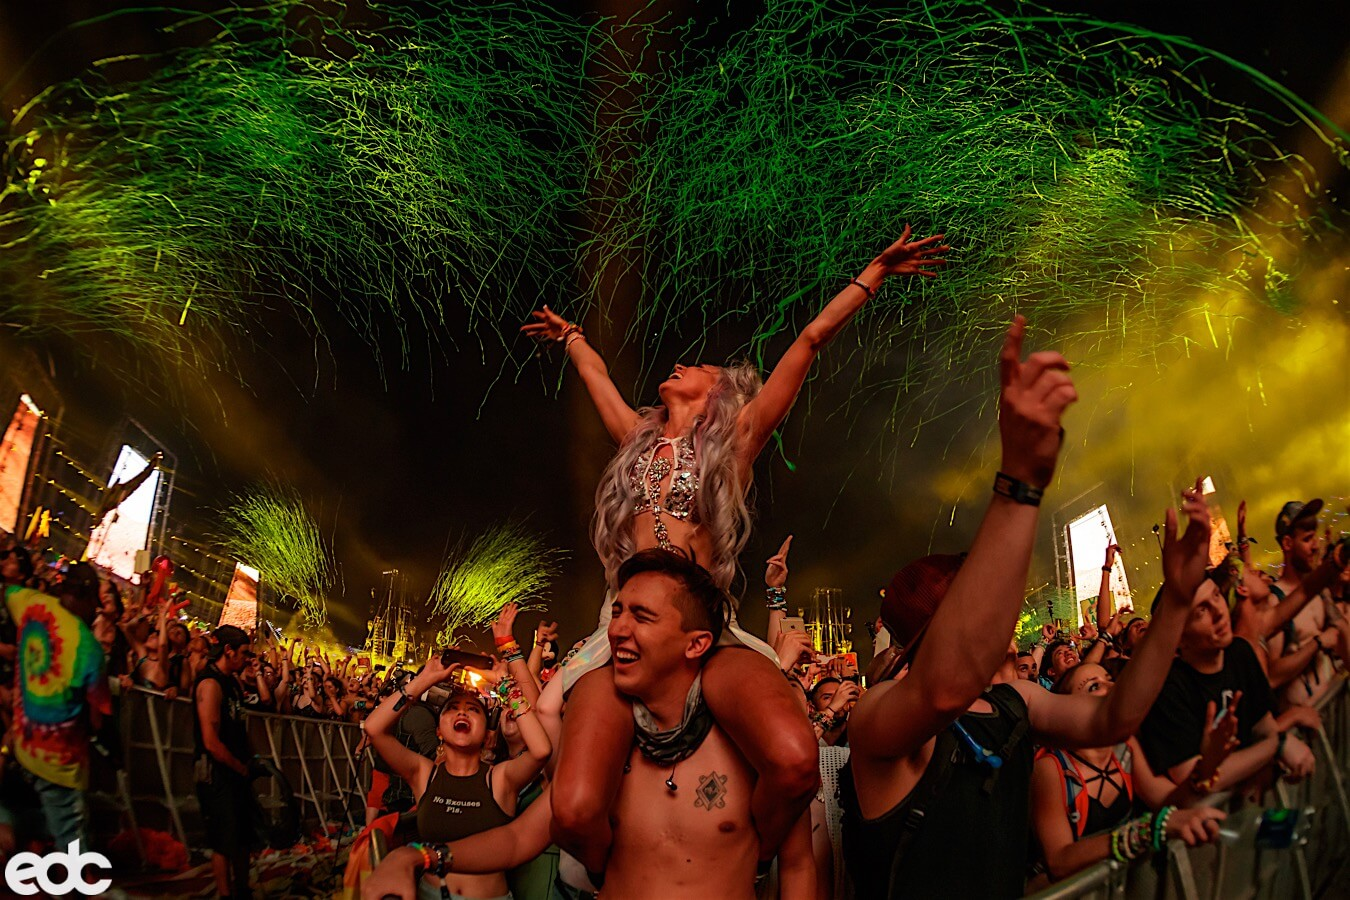 020edclv2017 0617 003904 8954 scf - How much do you know about the edm industry? #2